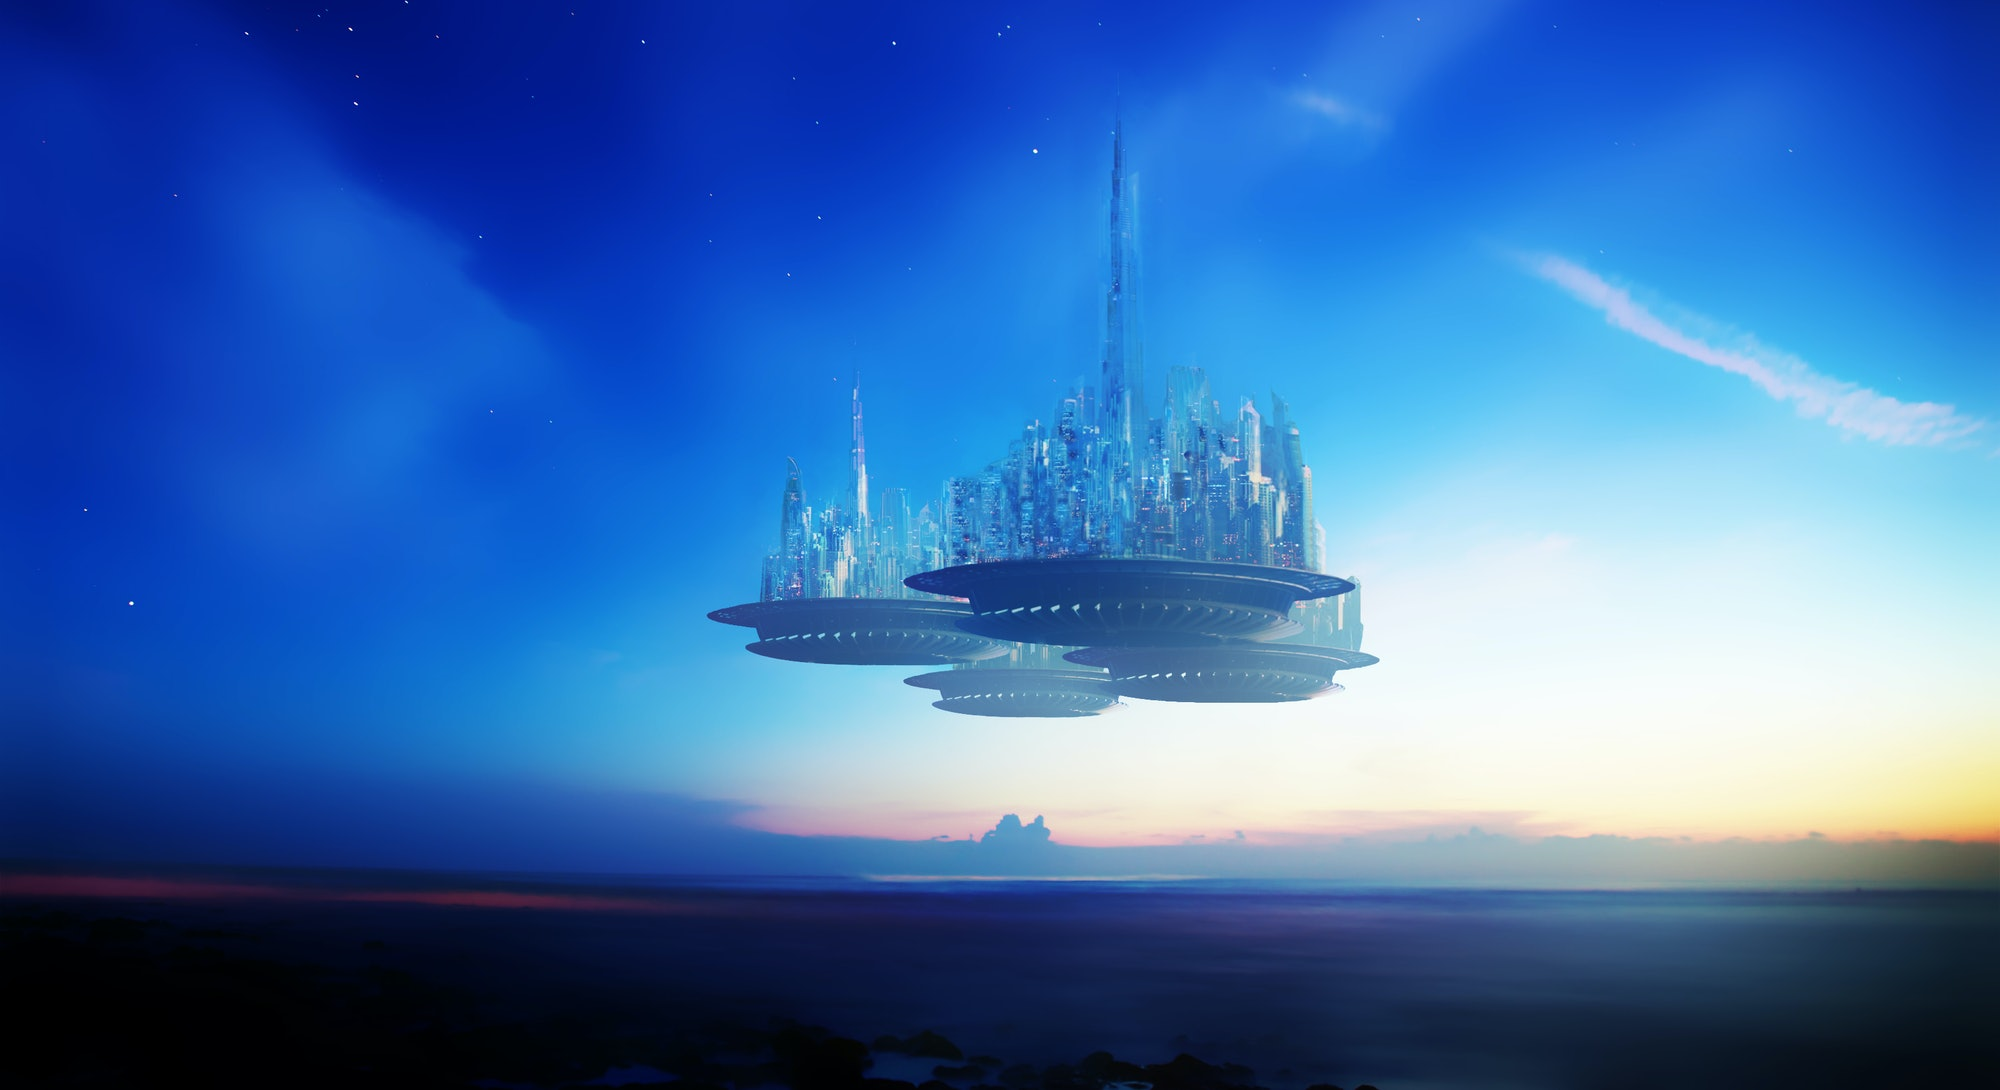 Fictional city of the future. Portrait of a Utopian society.